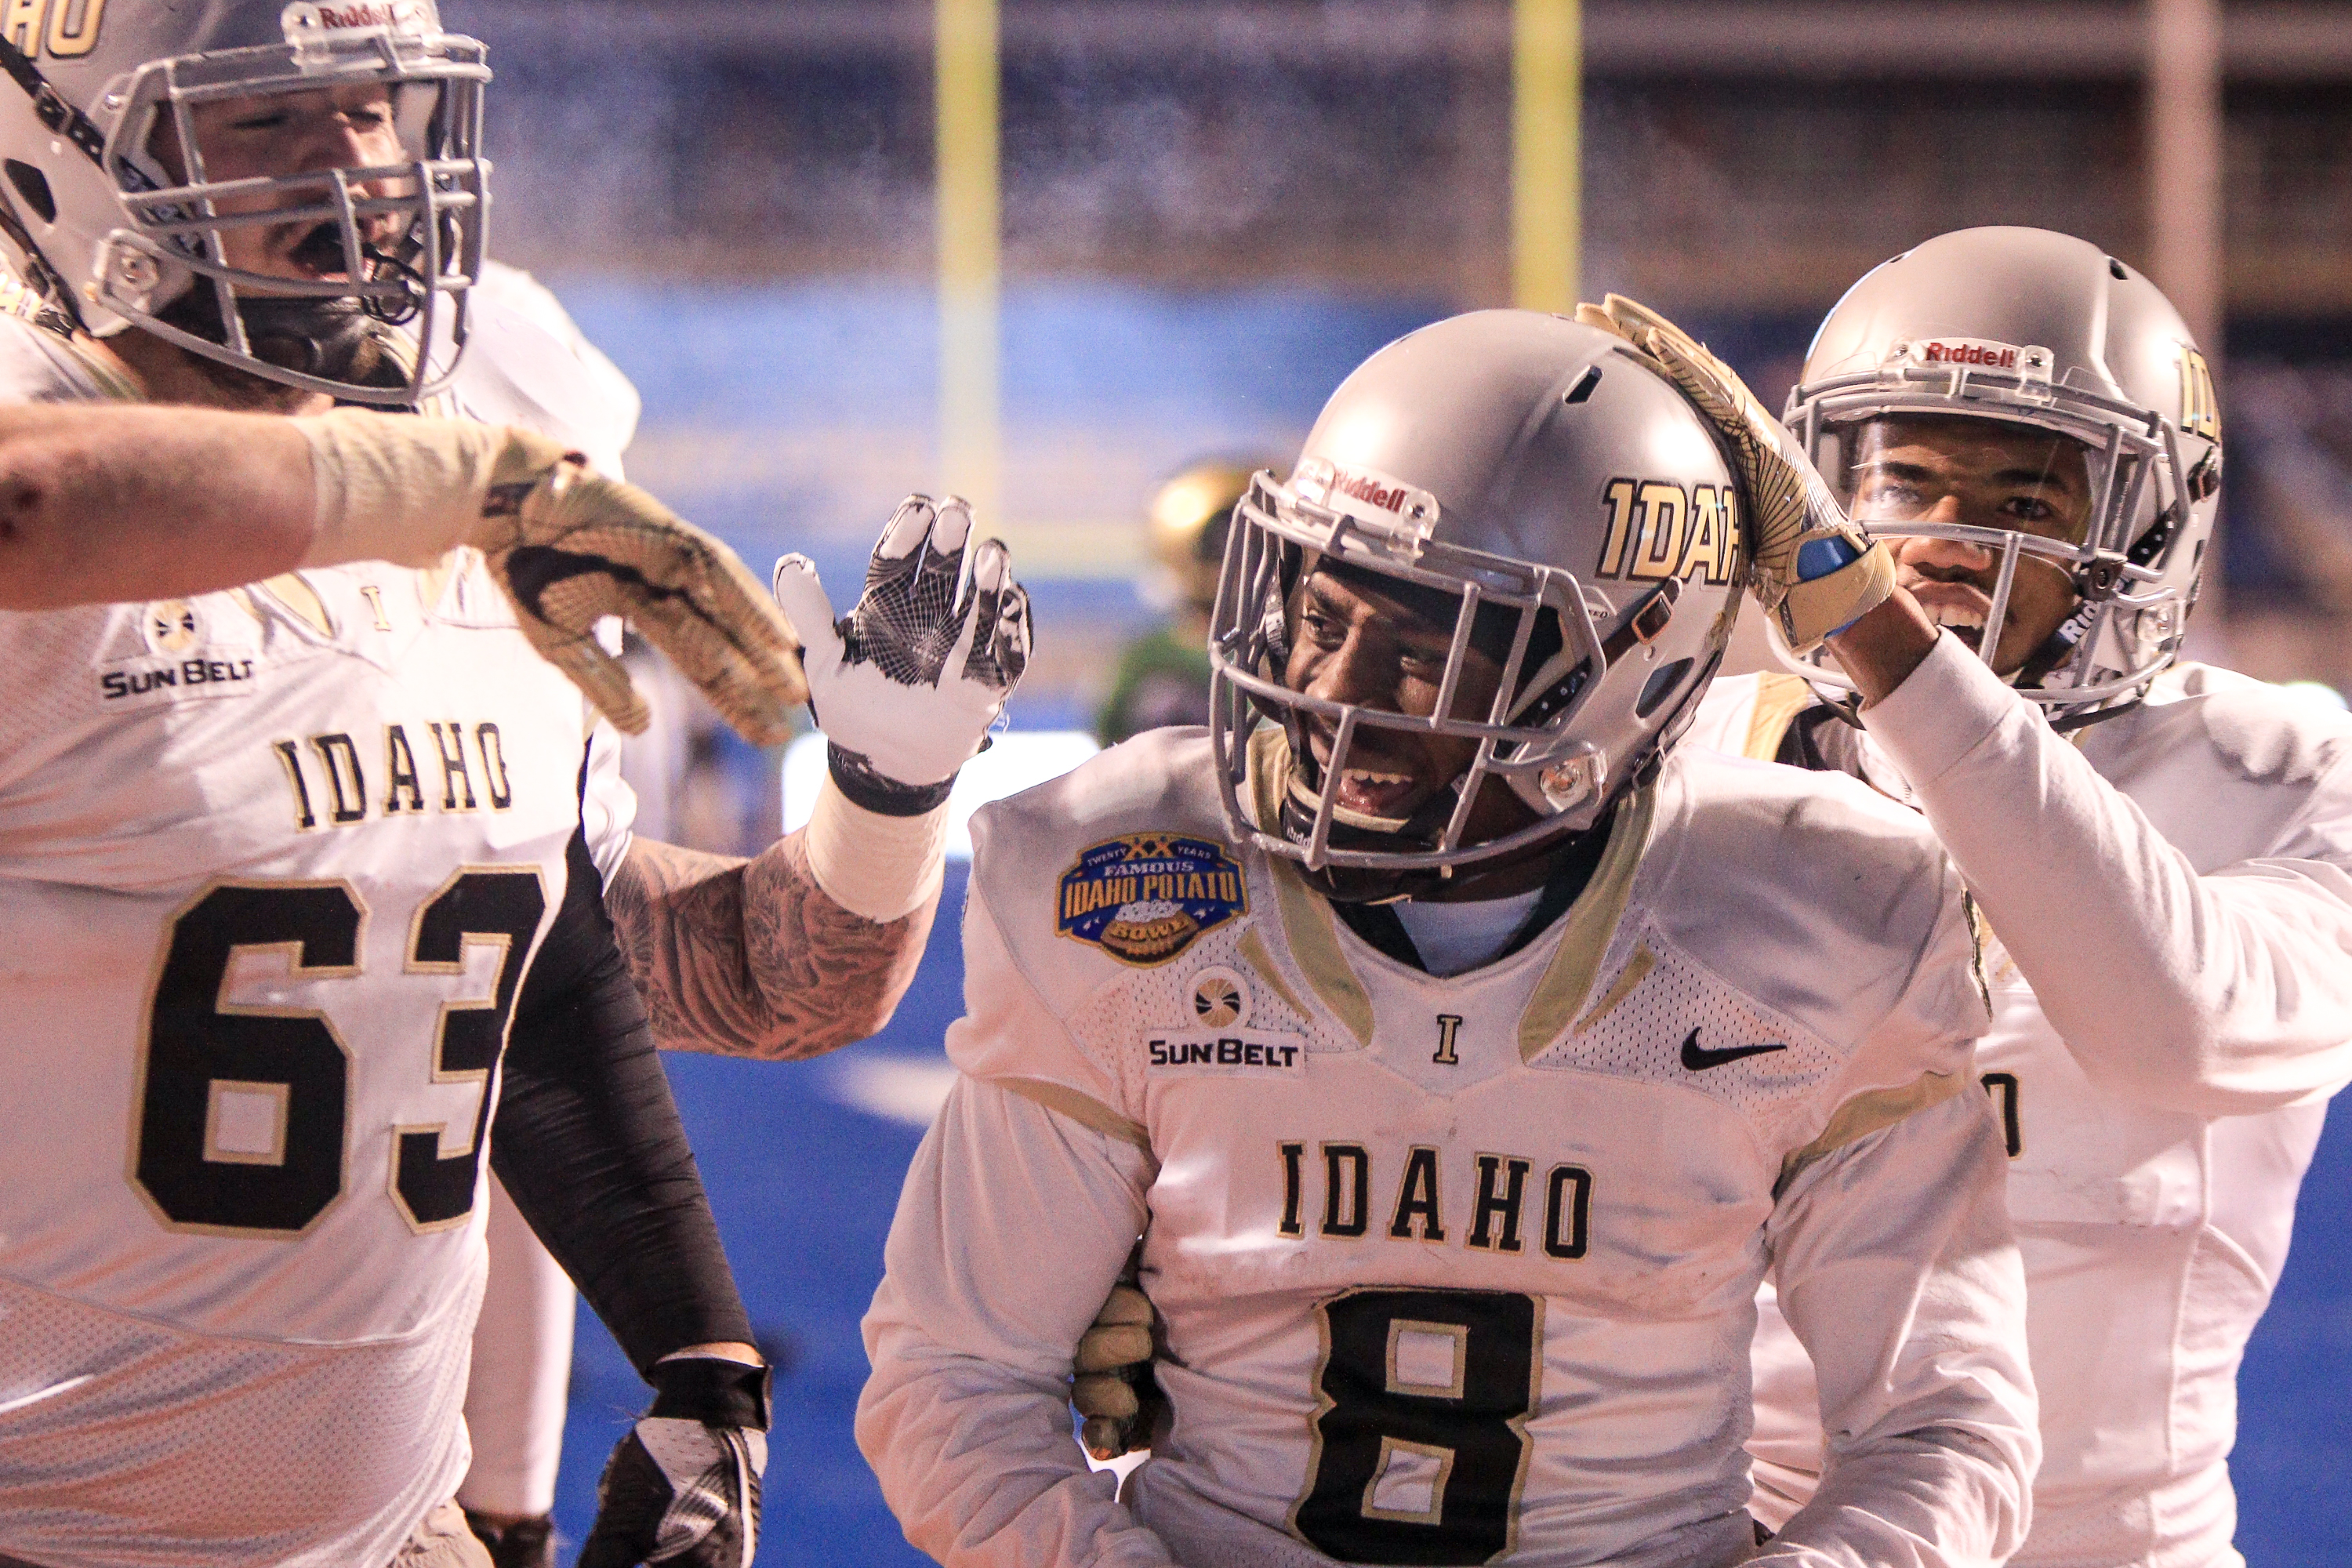 Idaho QB Matt Linehan blasts school president after bowl game win